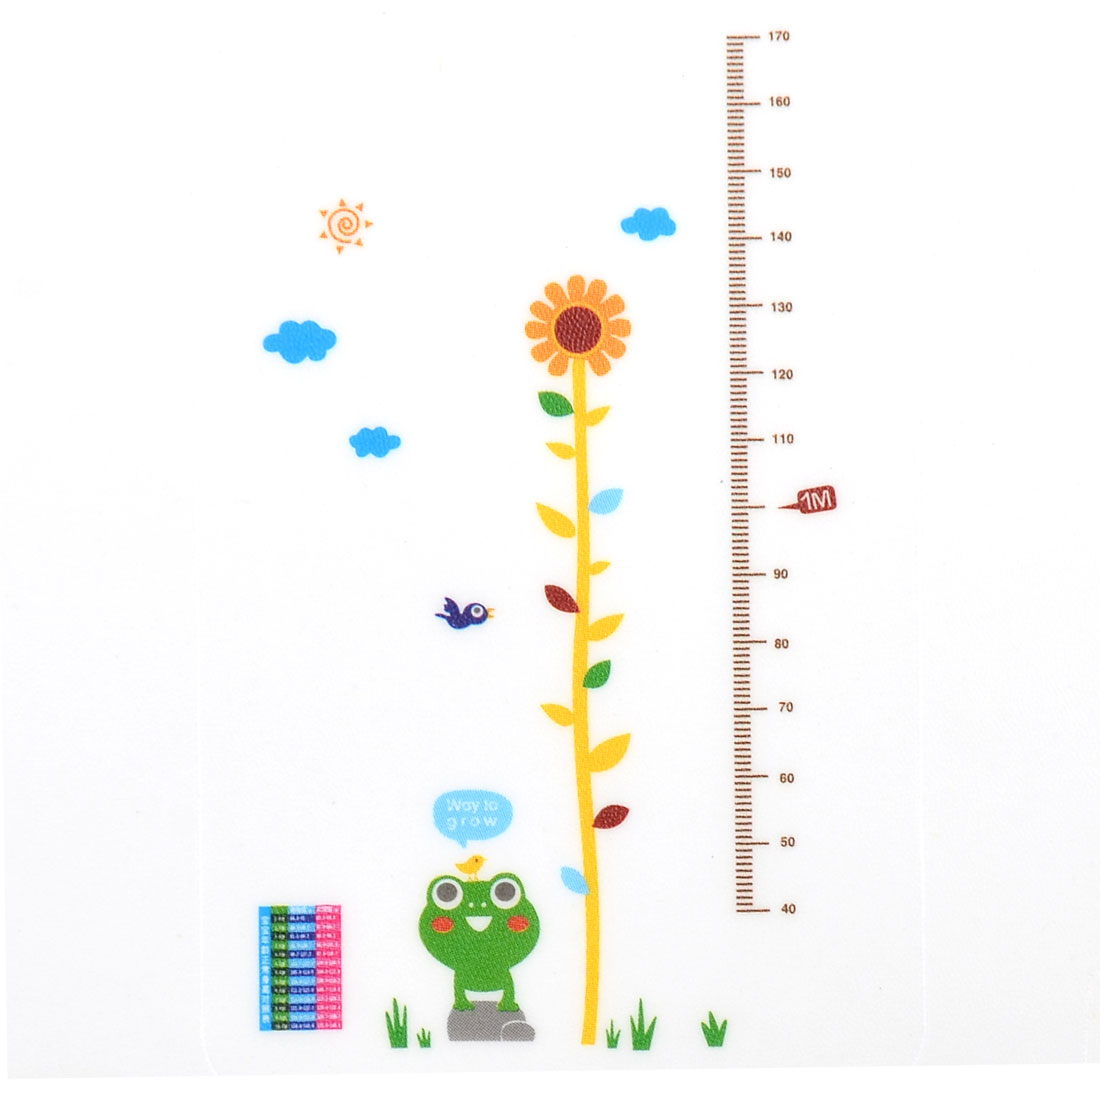 Flower Fog Growth Height Measure Chart Pattern Wall Sticker 70x50cm